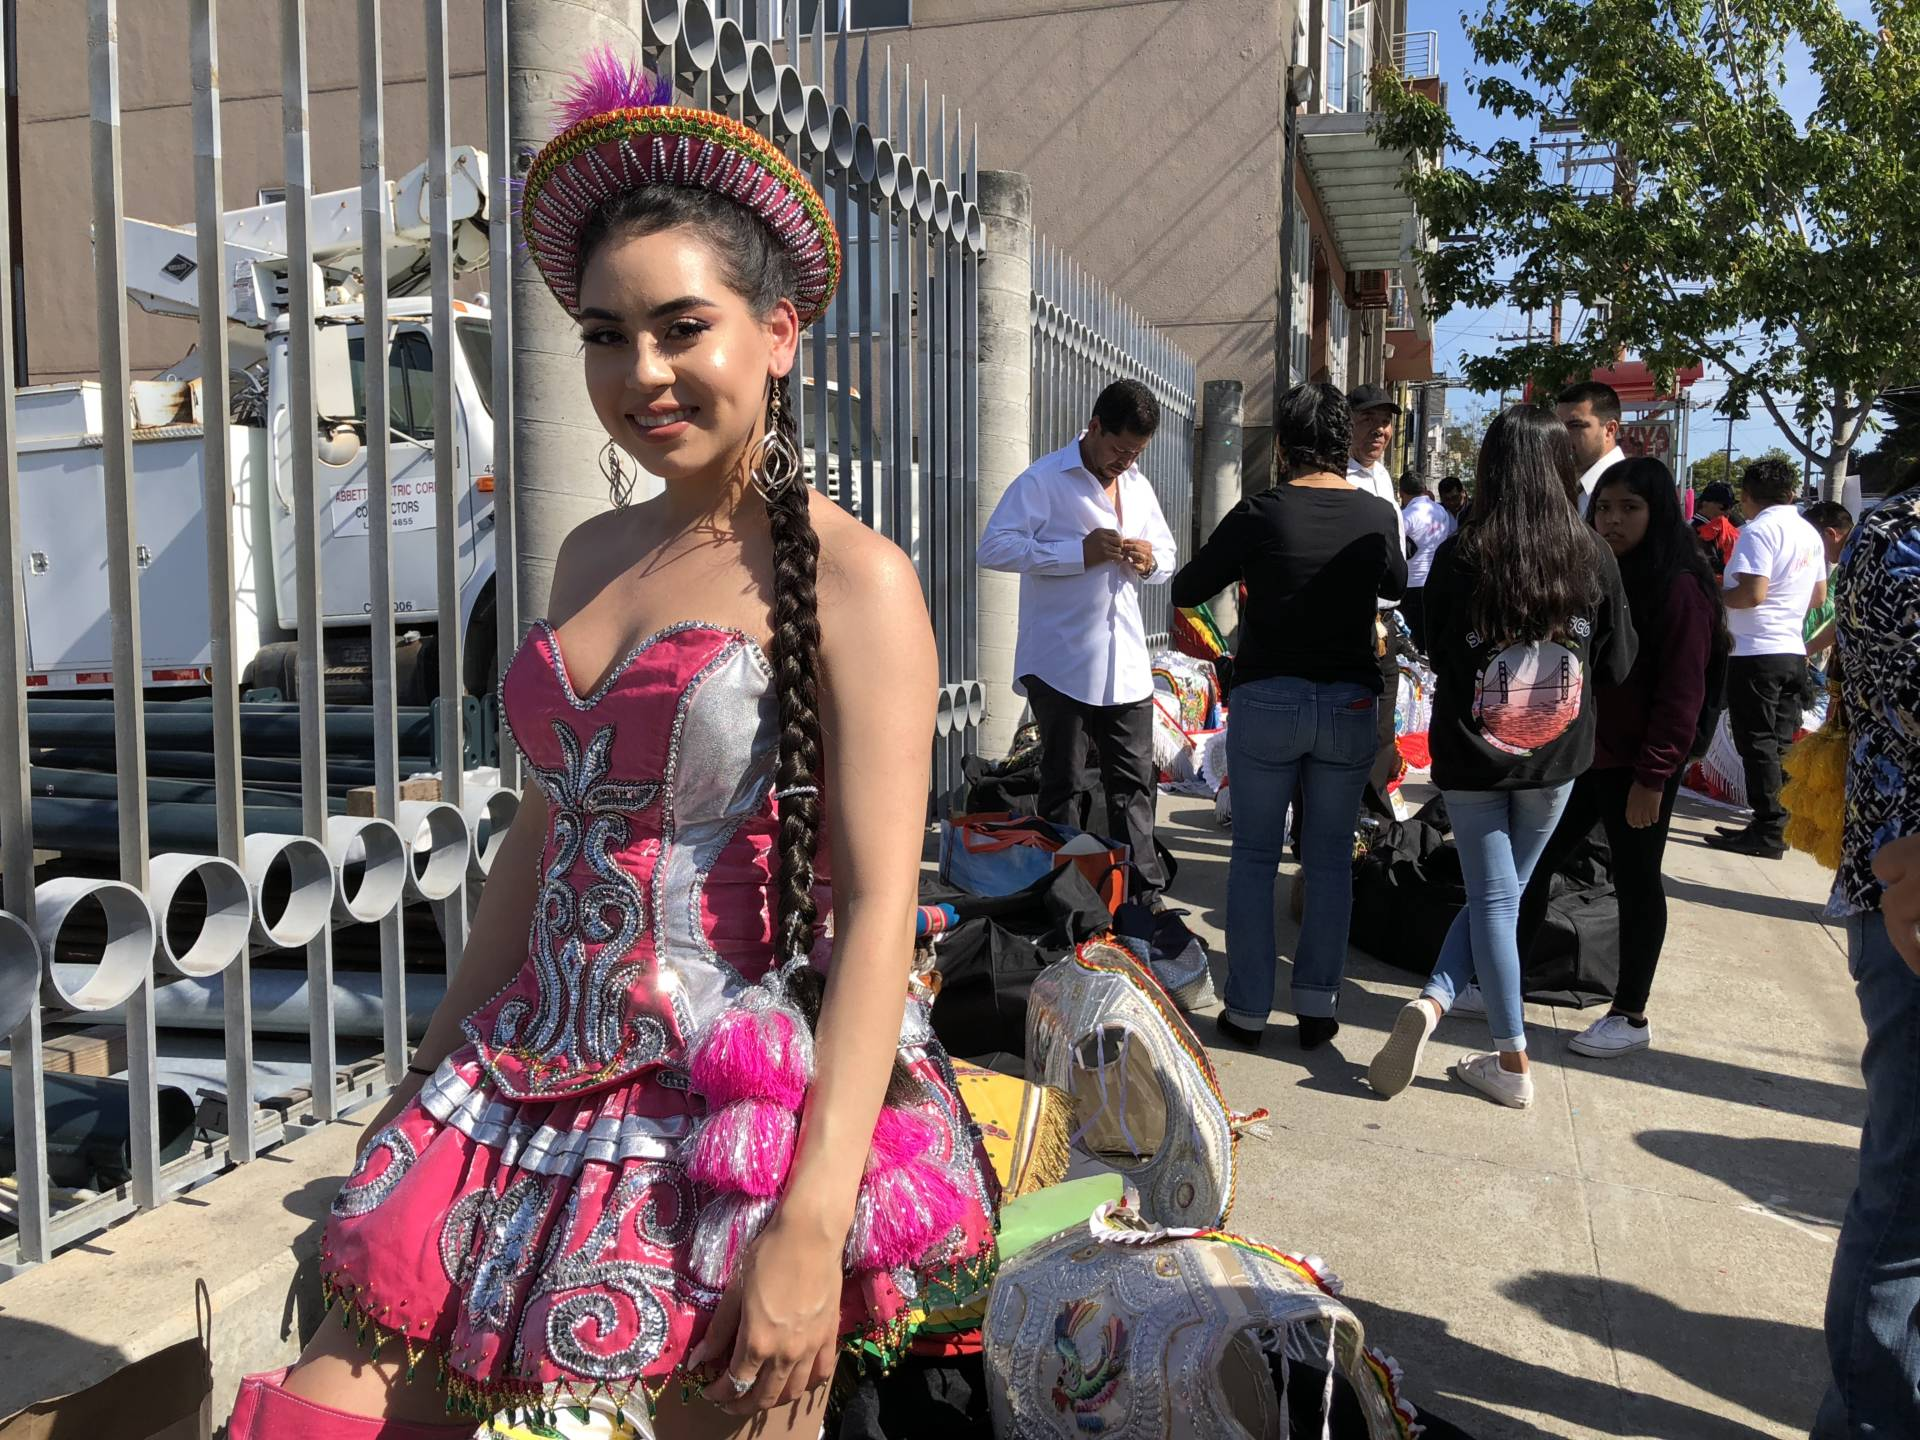 Tania Olmos woke up at 5:40 a.m. to get up and ready for today's Carnaval. She's part of the group Morenada para el Mundo 100% es Boliviana, a group made up entirely of Bolivians wearing elaborate outfits.  Bianca Hernandez/KQED